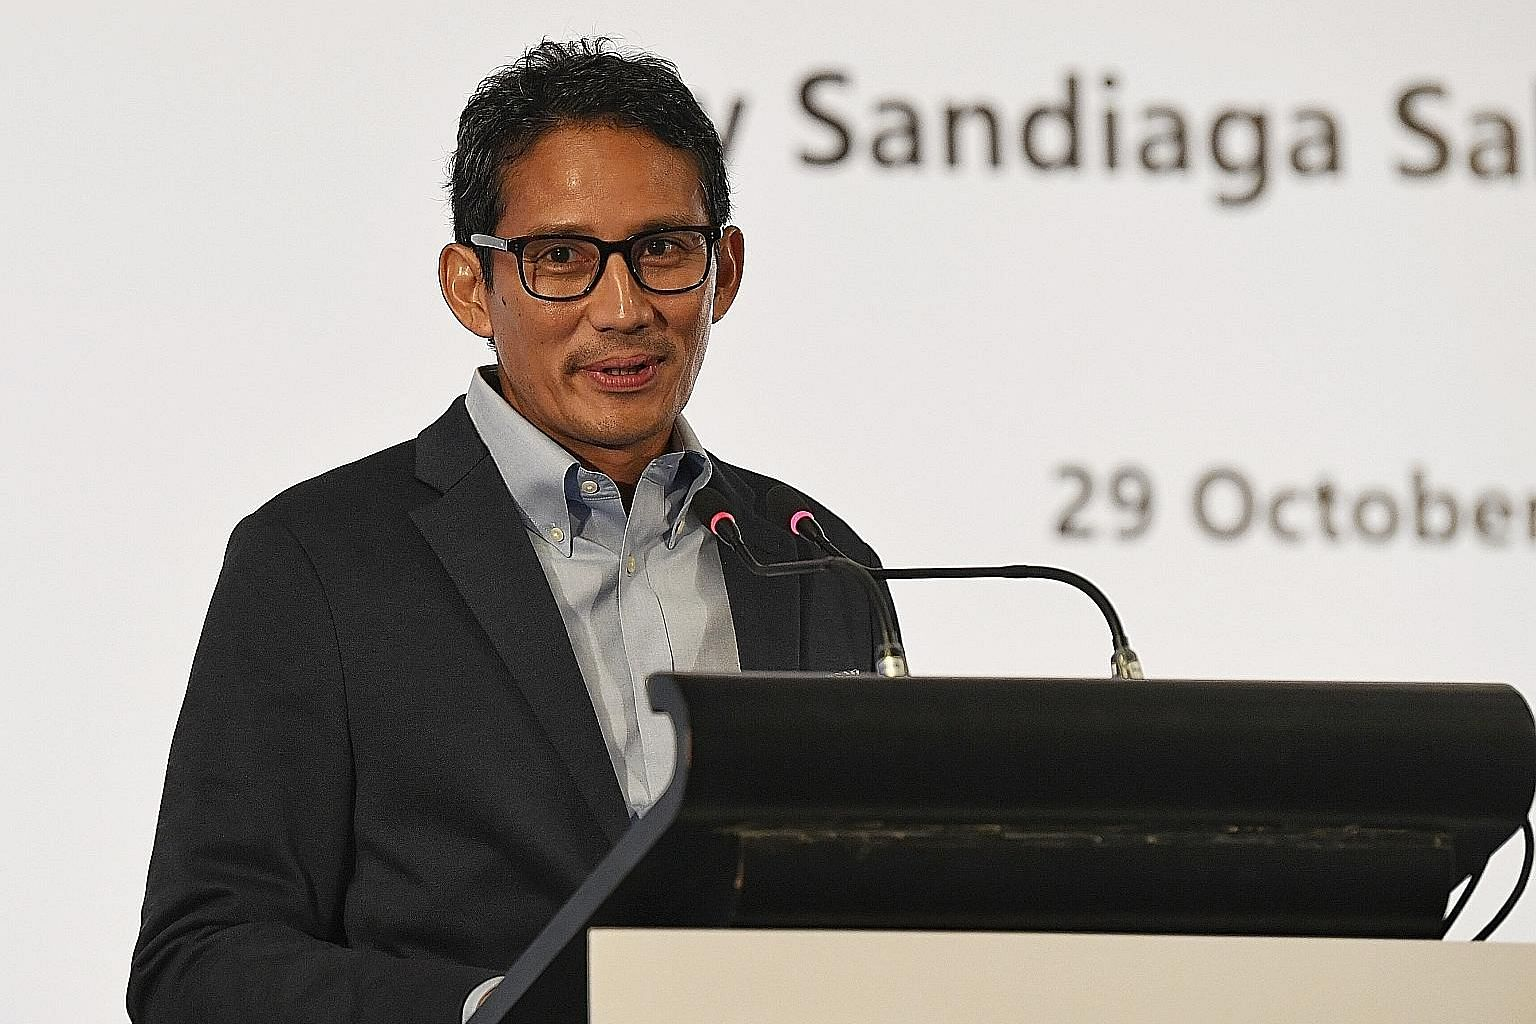 Mr Sandiaga Uno giving a talk on Indonesia's Future Economy at Orchard Hotel yesterday.